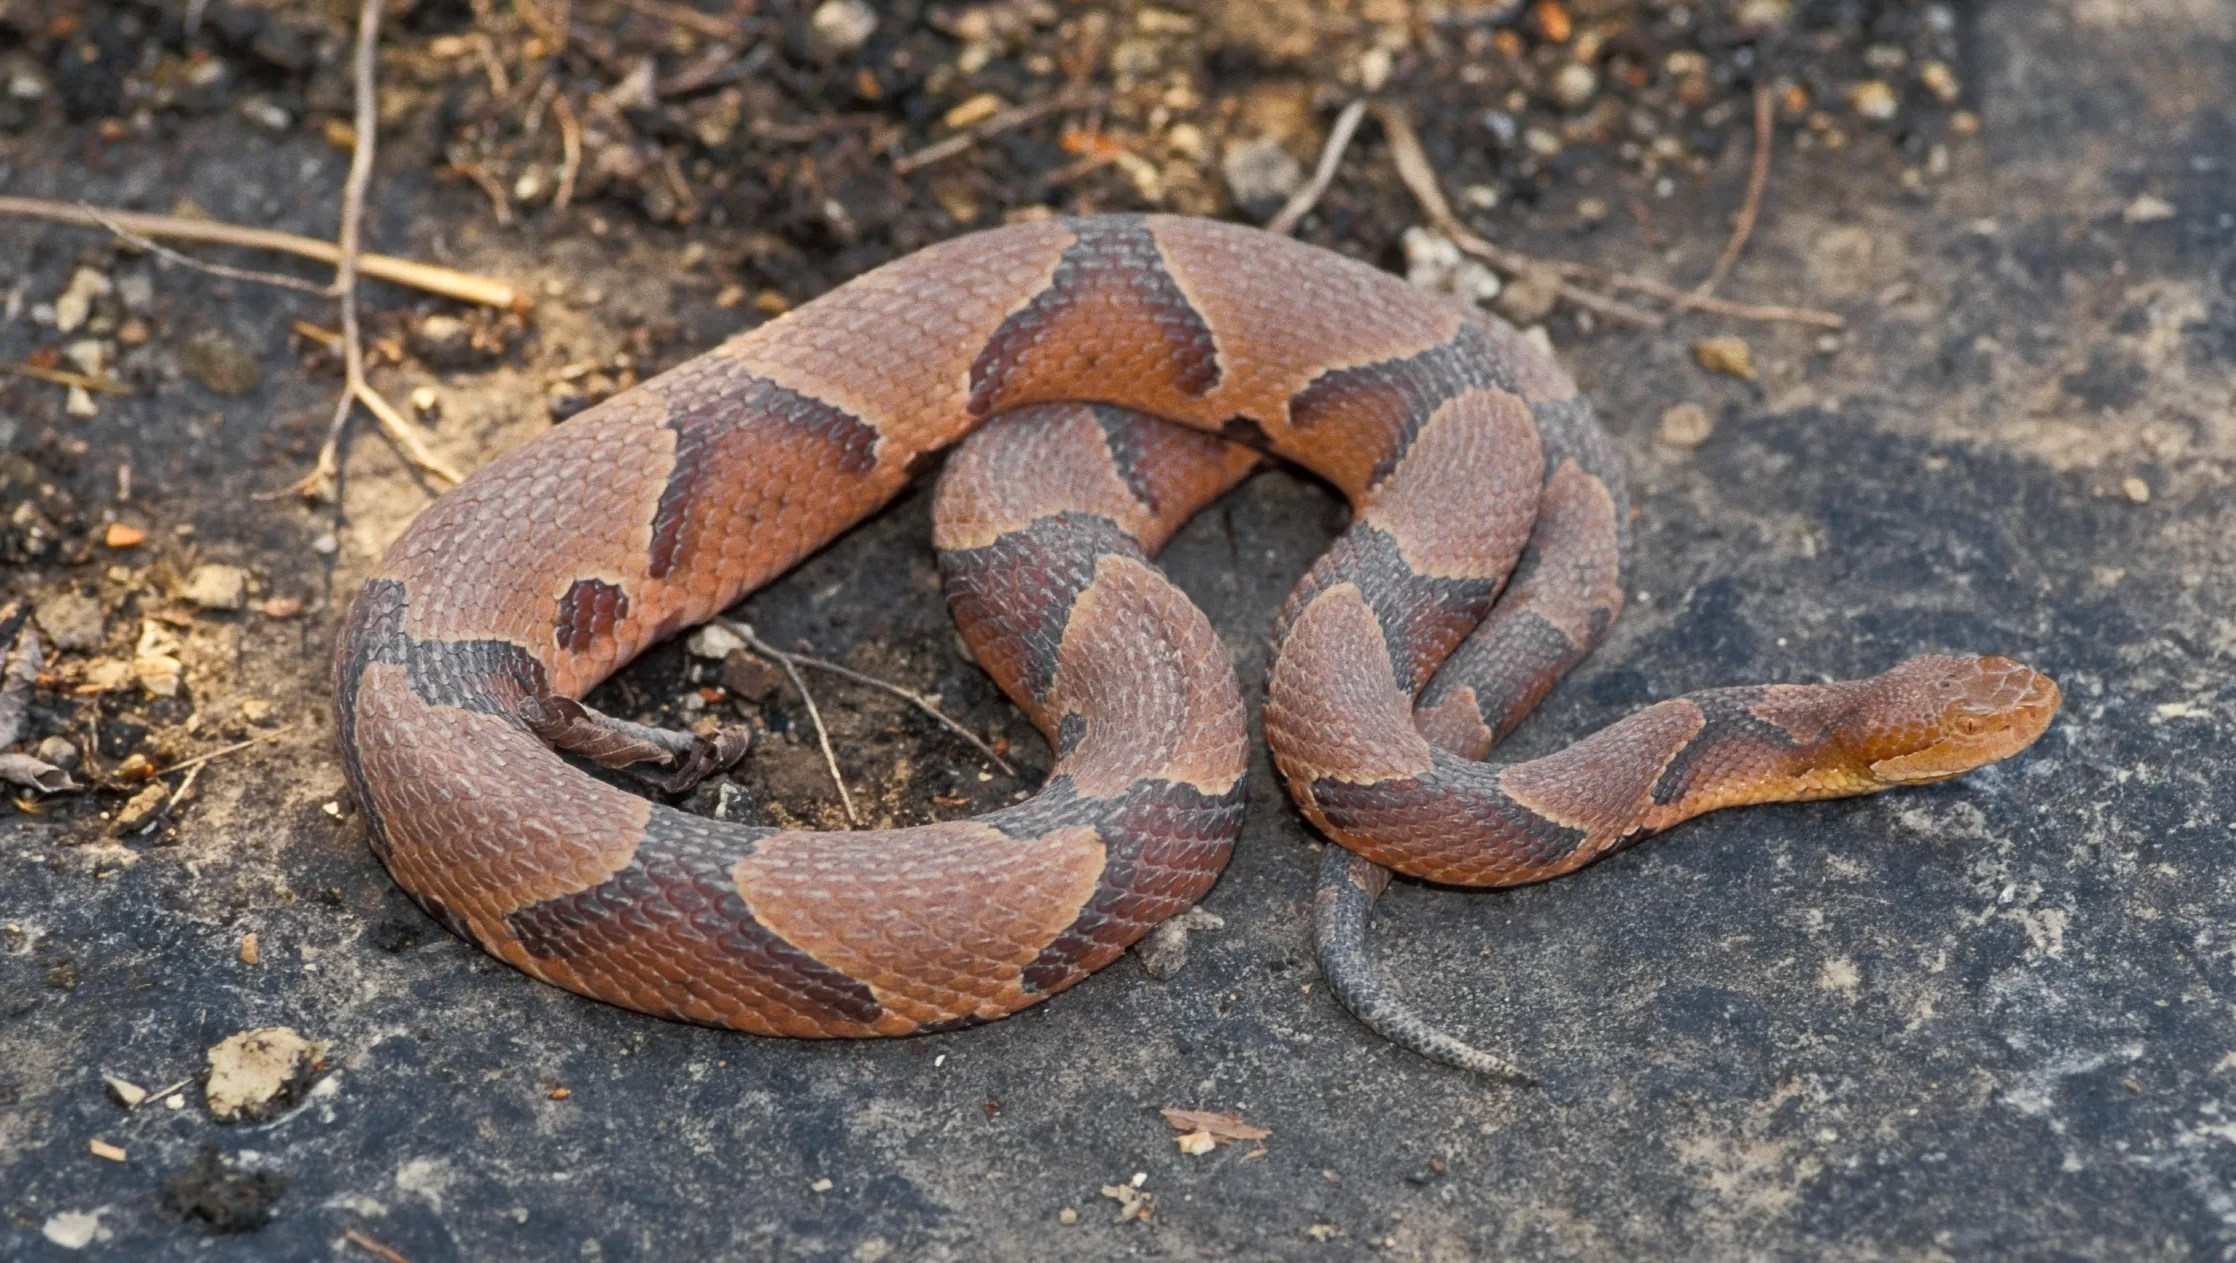 northern copperhead pictures - HD 3200×1680